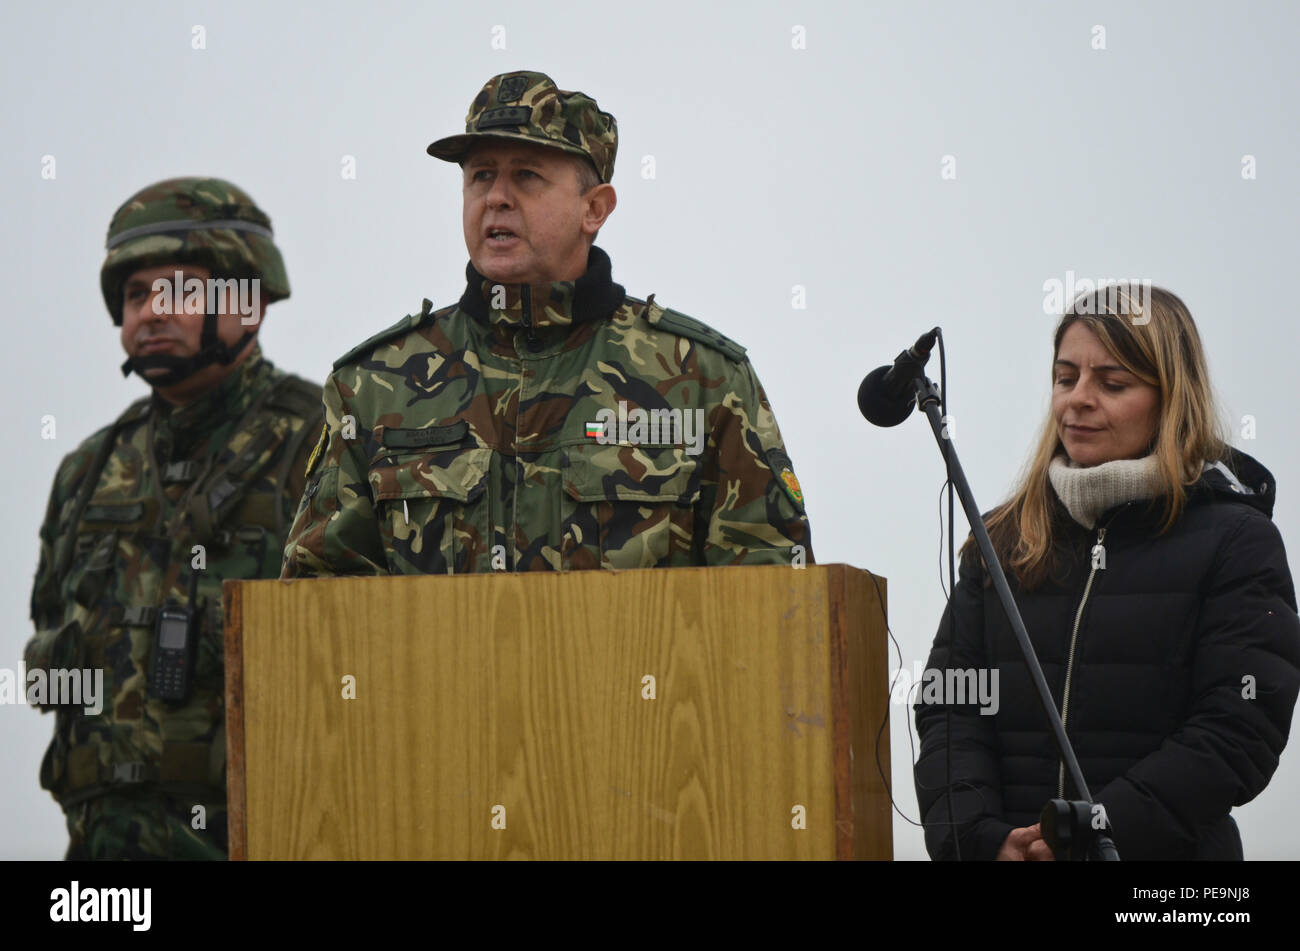 Bulgarian Col. Margarit Mihailov (center), the commander of 61st Mechanized Brigade, gives the closing comments during the closing ceremony of Exercise Peace Sentinel at Novo Selo Training Center, Bulgaria, Nov. 24, 2015. Kristina Brunson (right), a linguist, interprets the Bulgarian language into English. (U.S. Army photo by Staff Sgt. Steven M. Colvin/Released) - Stock Image